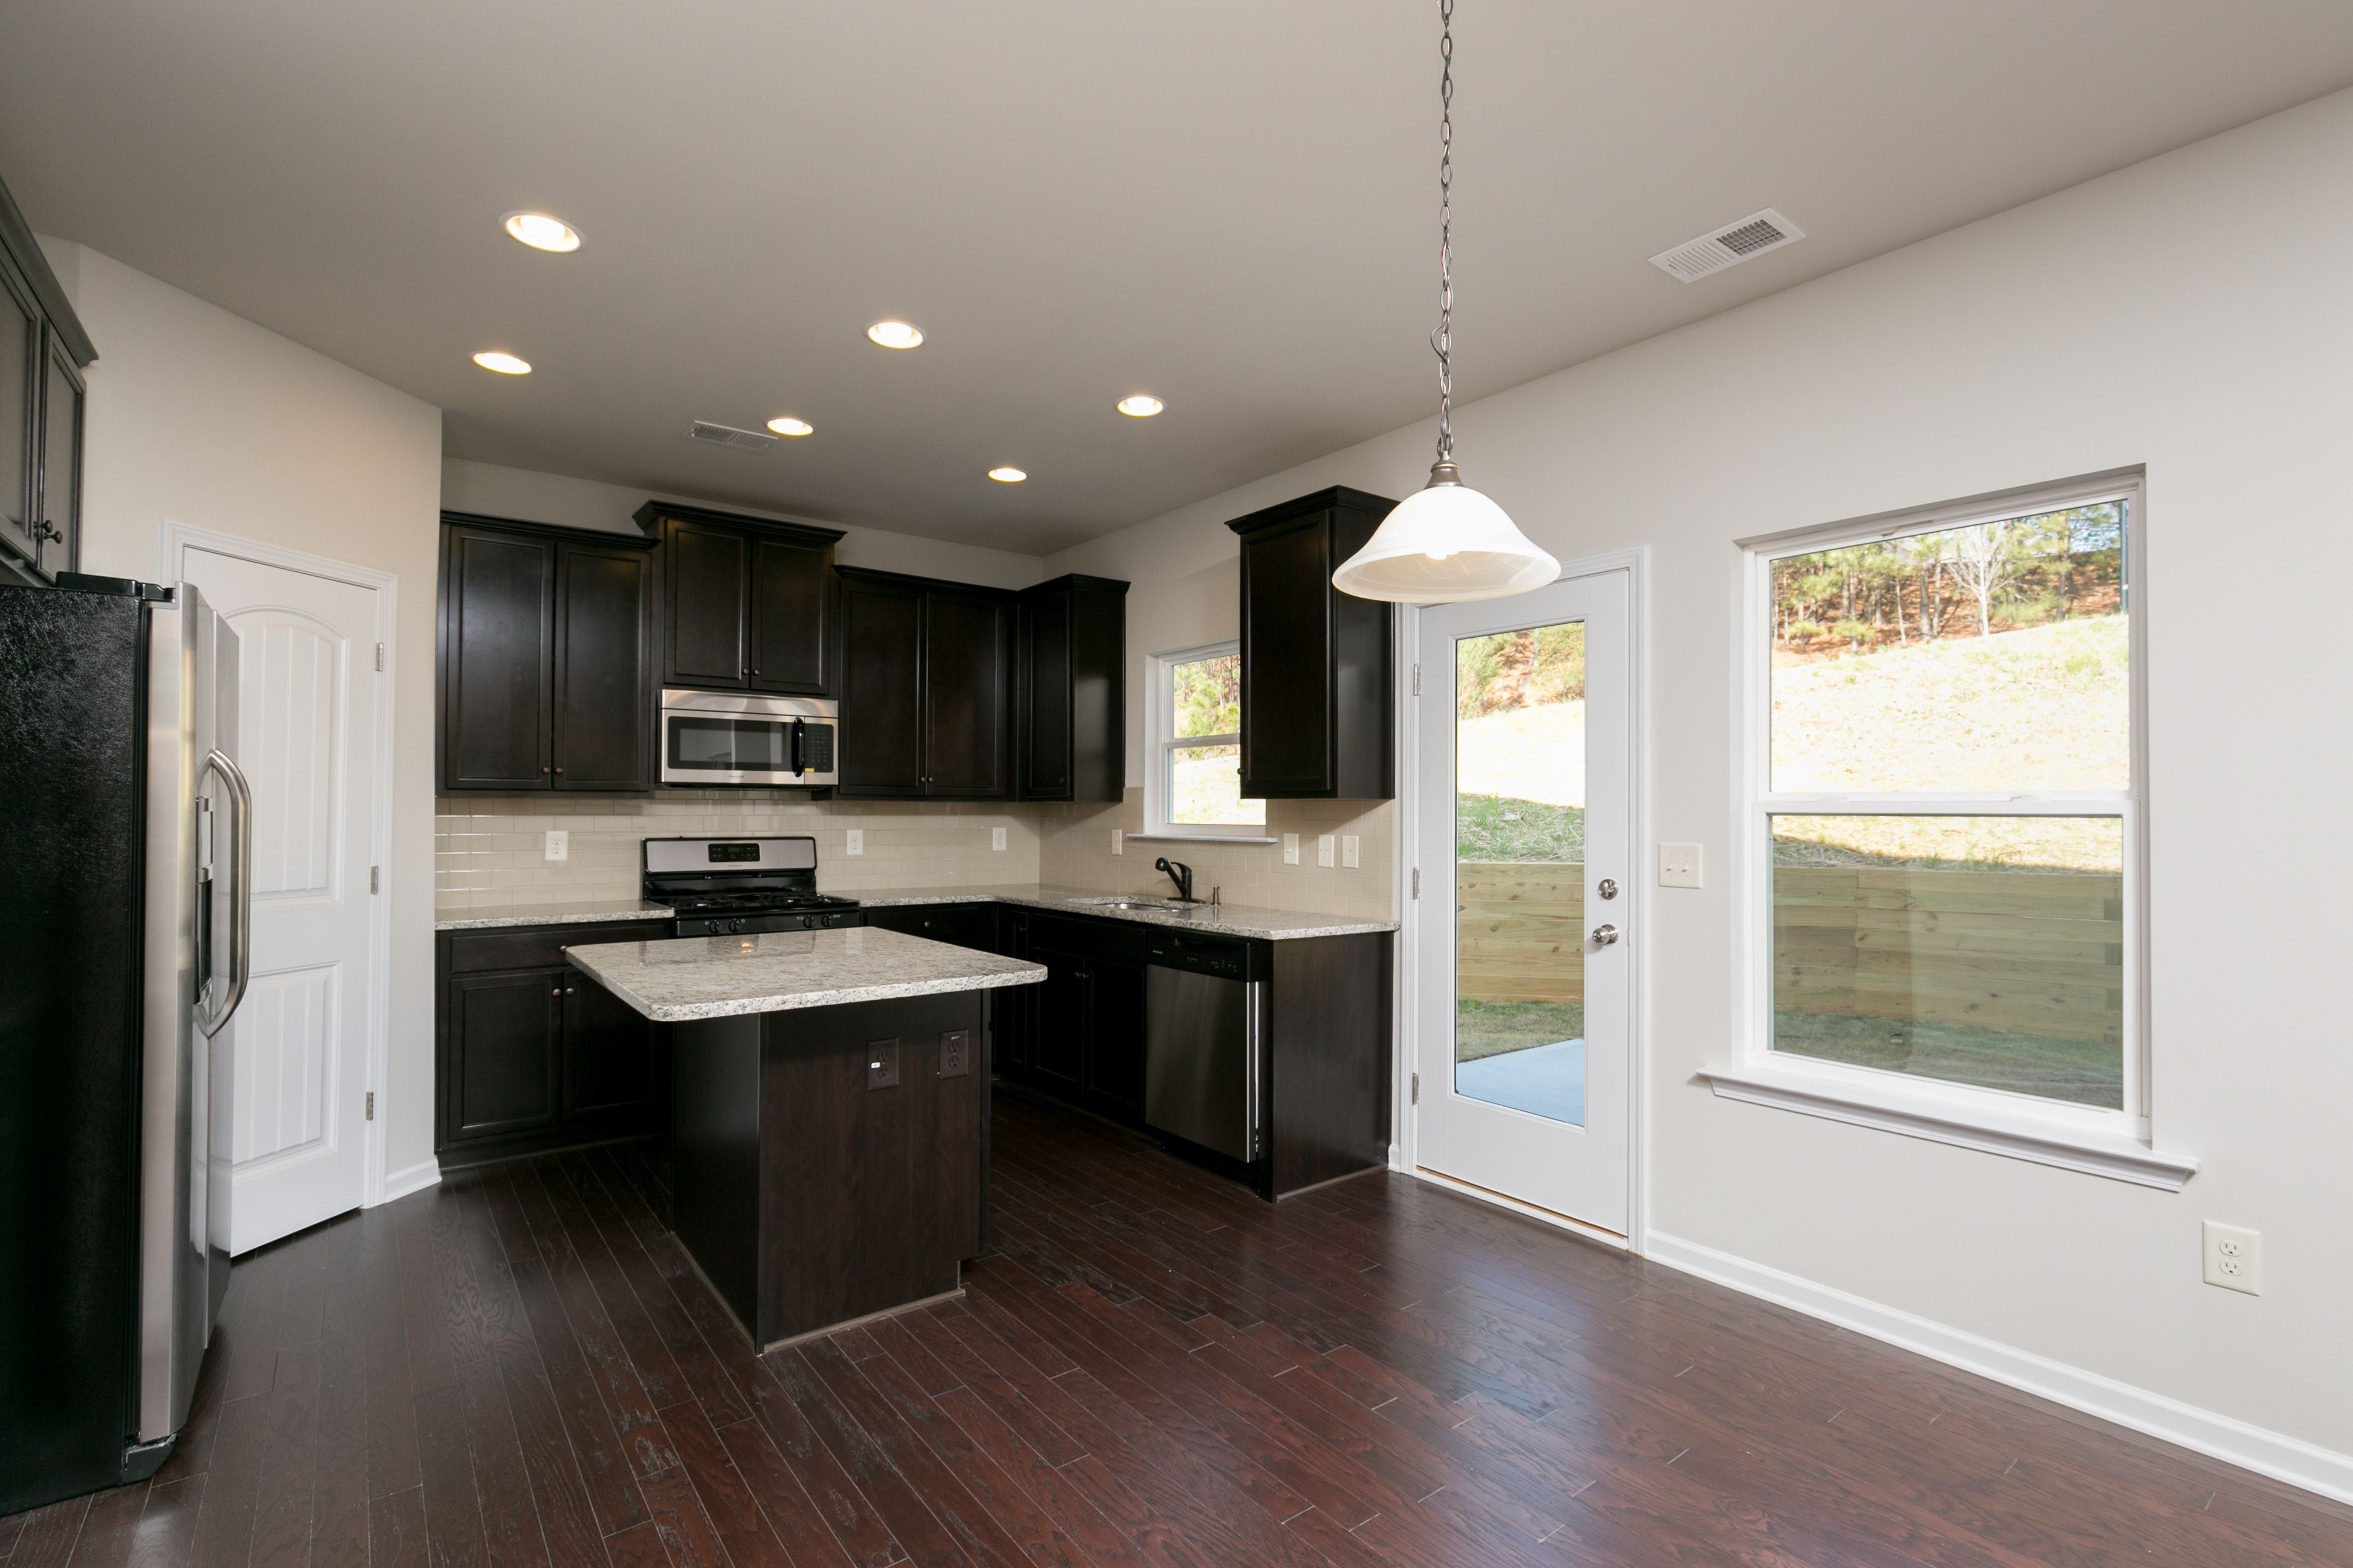 Kitchen featured in The Benson By Smith Douglas Homes in Anniston, AL